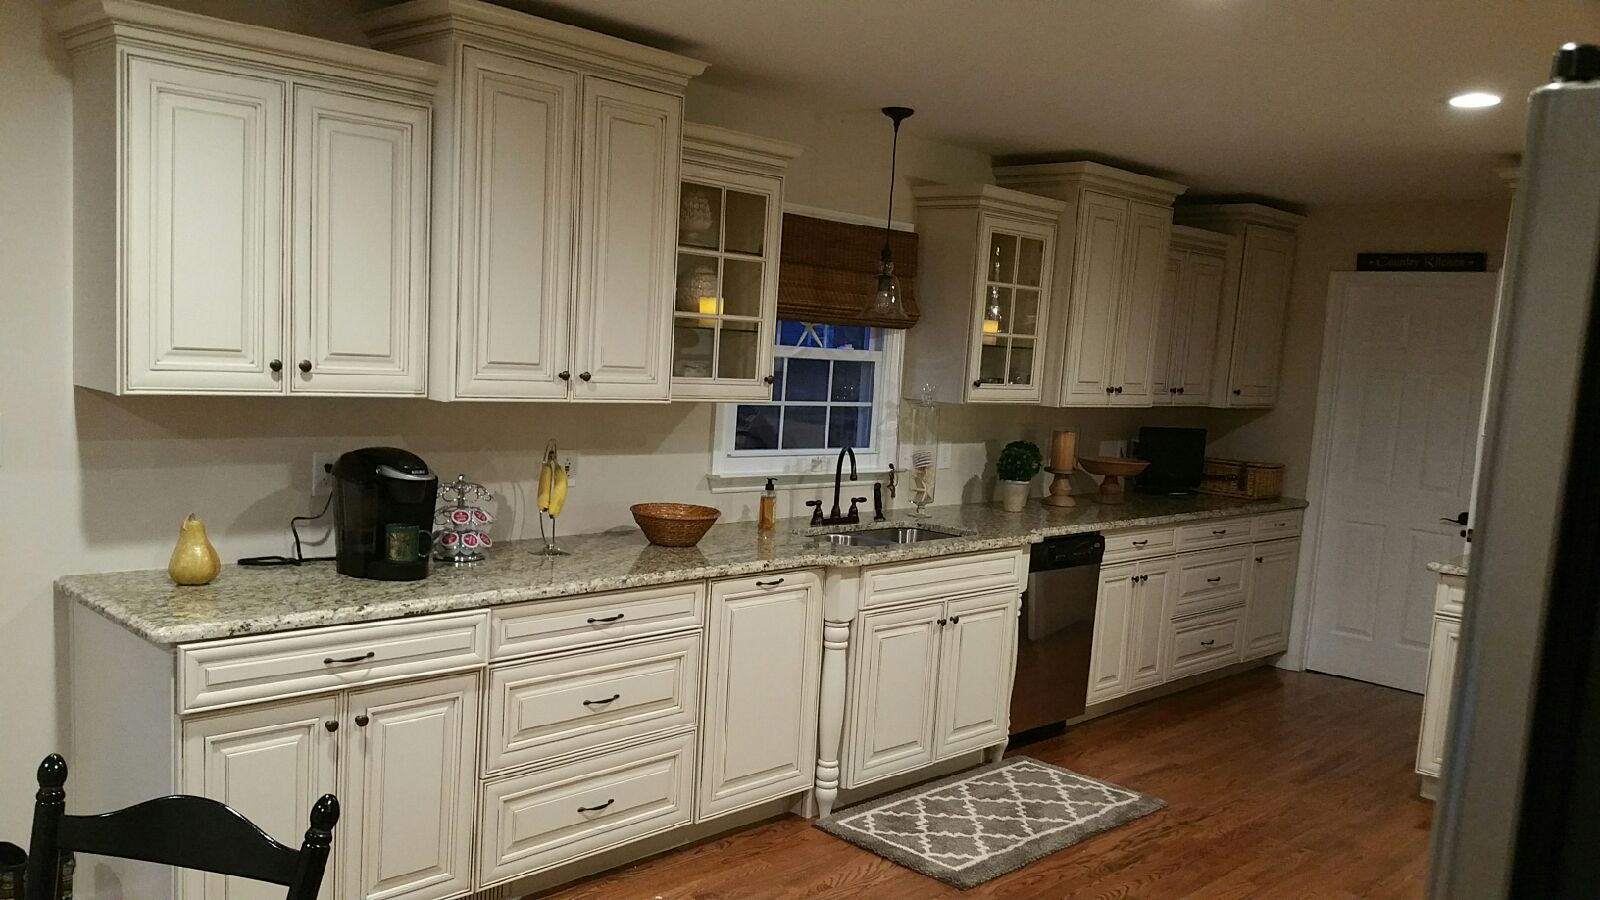 csd kitchen and bath, llc kitchen cabinet new jersey, kitchen design